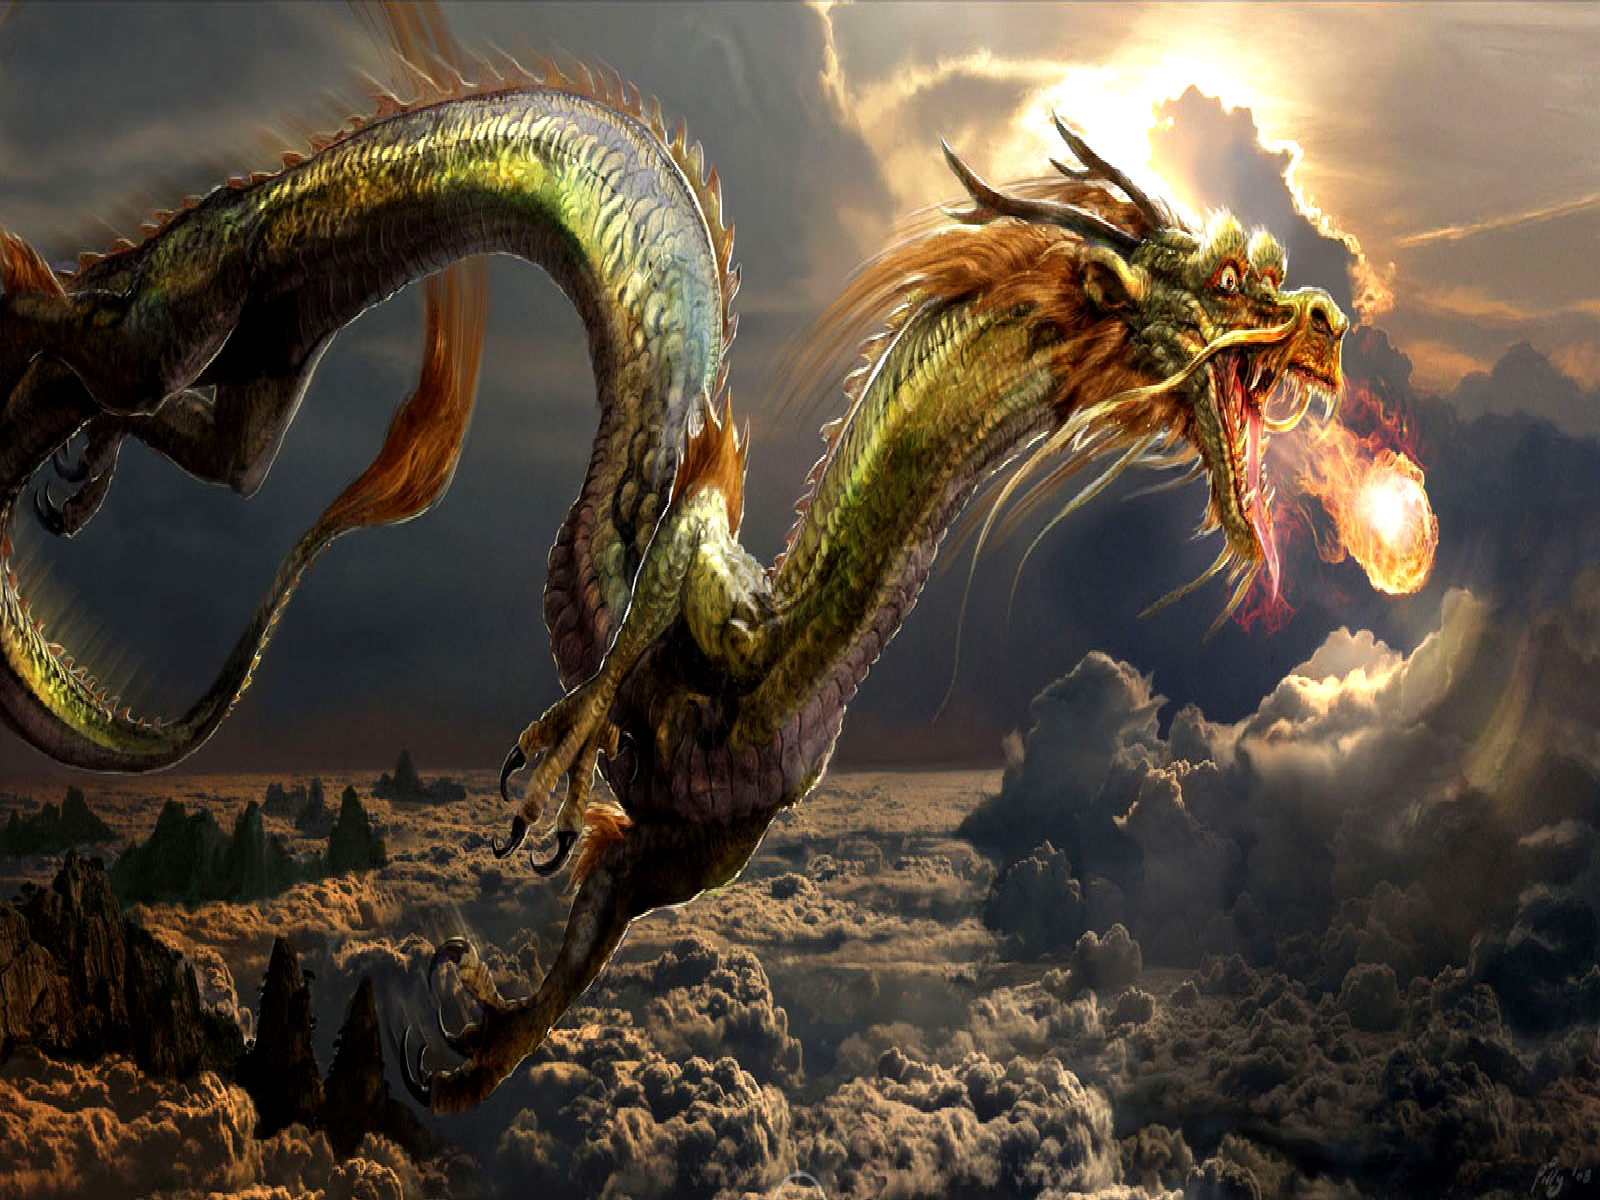 Awesome Dragon Wallpapers - Wallpapers Browse